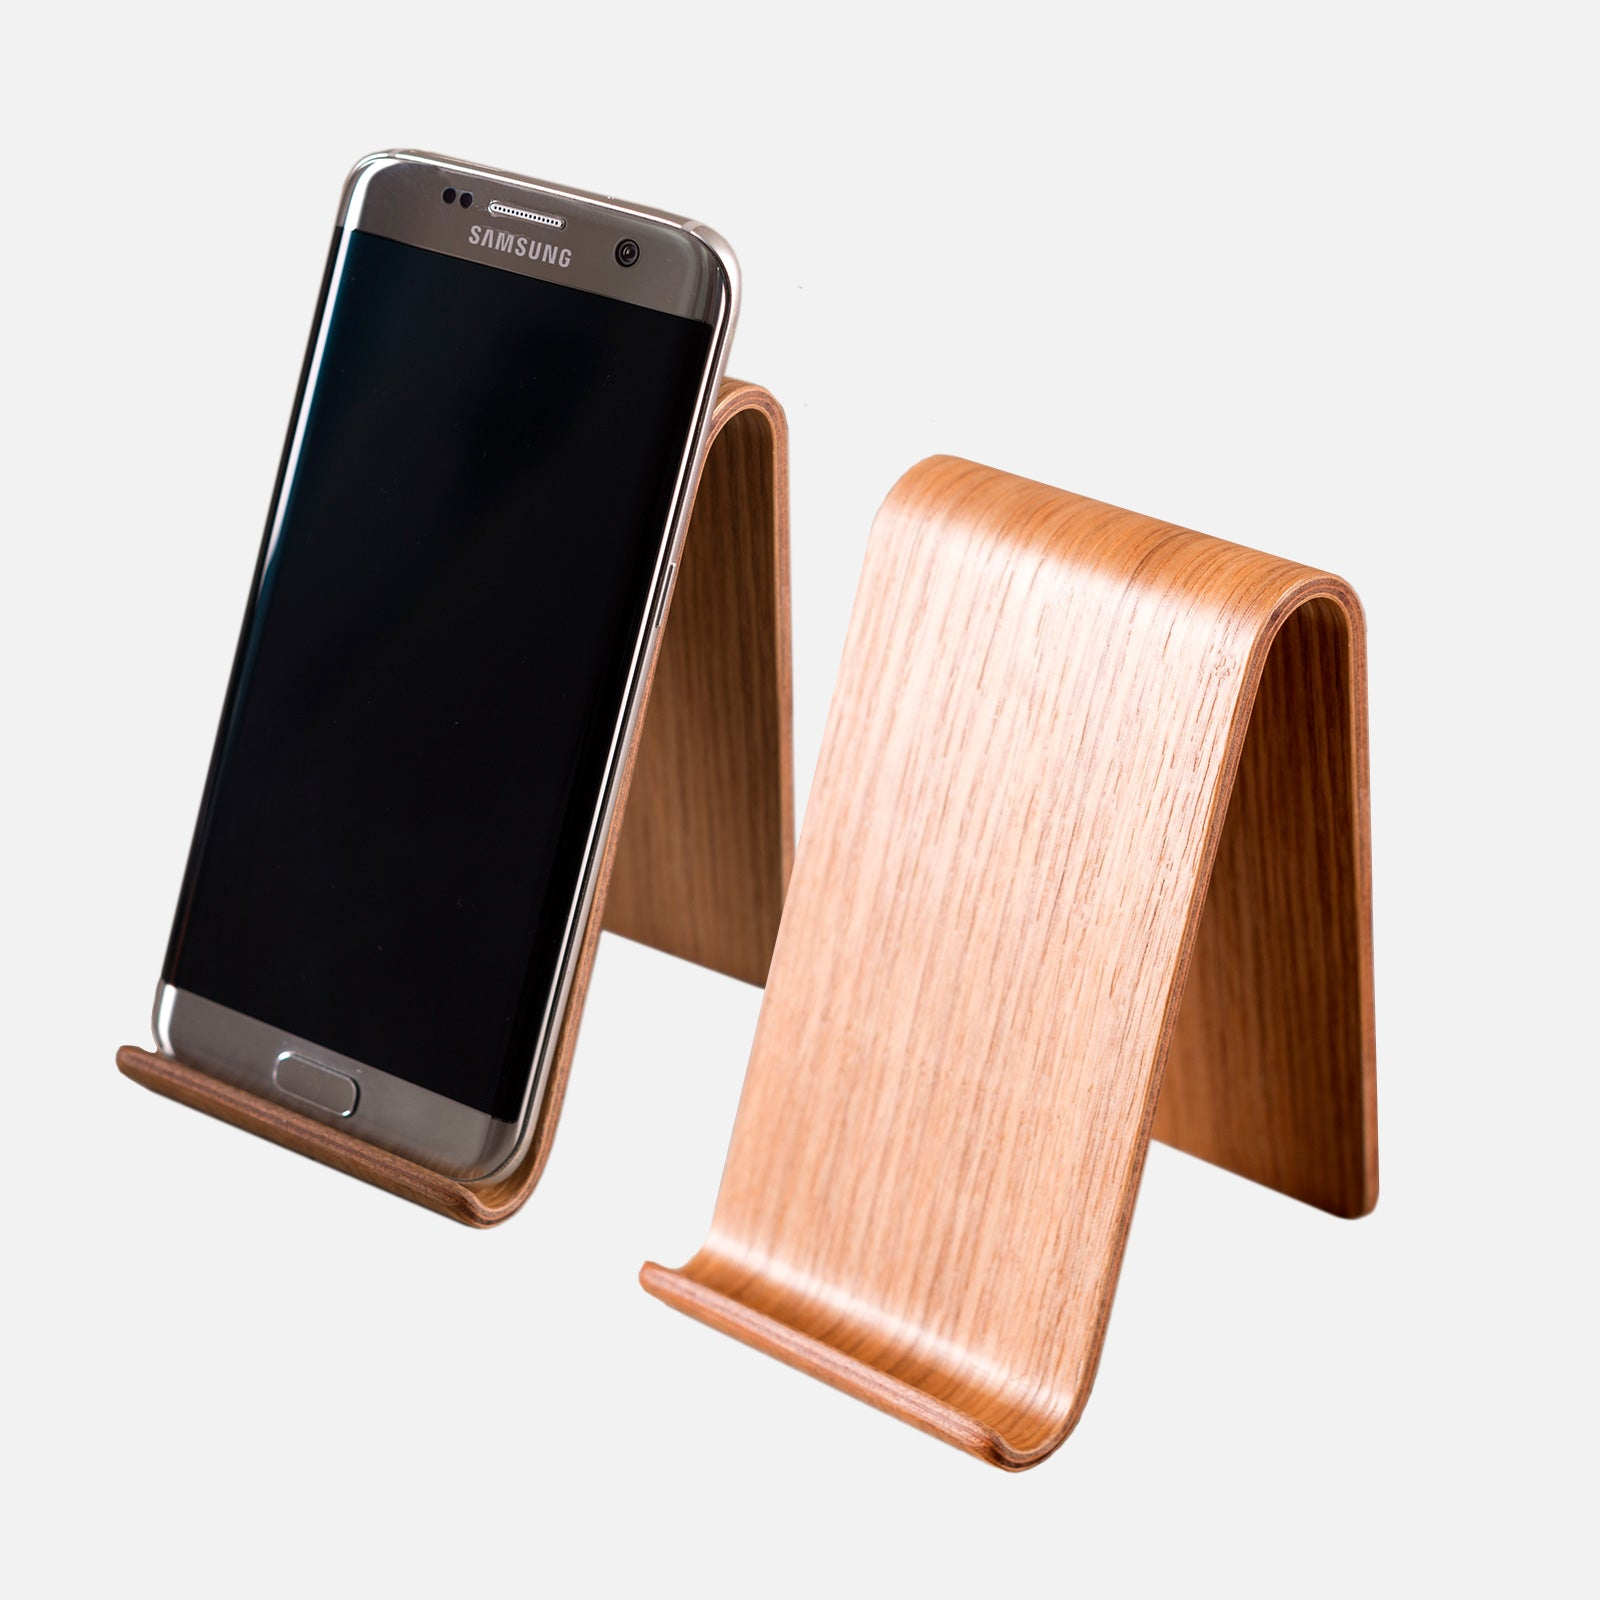 Willow Phone / Tablet Holder